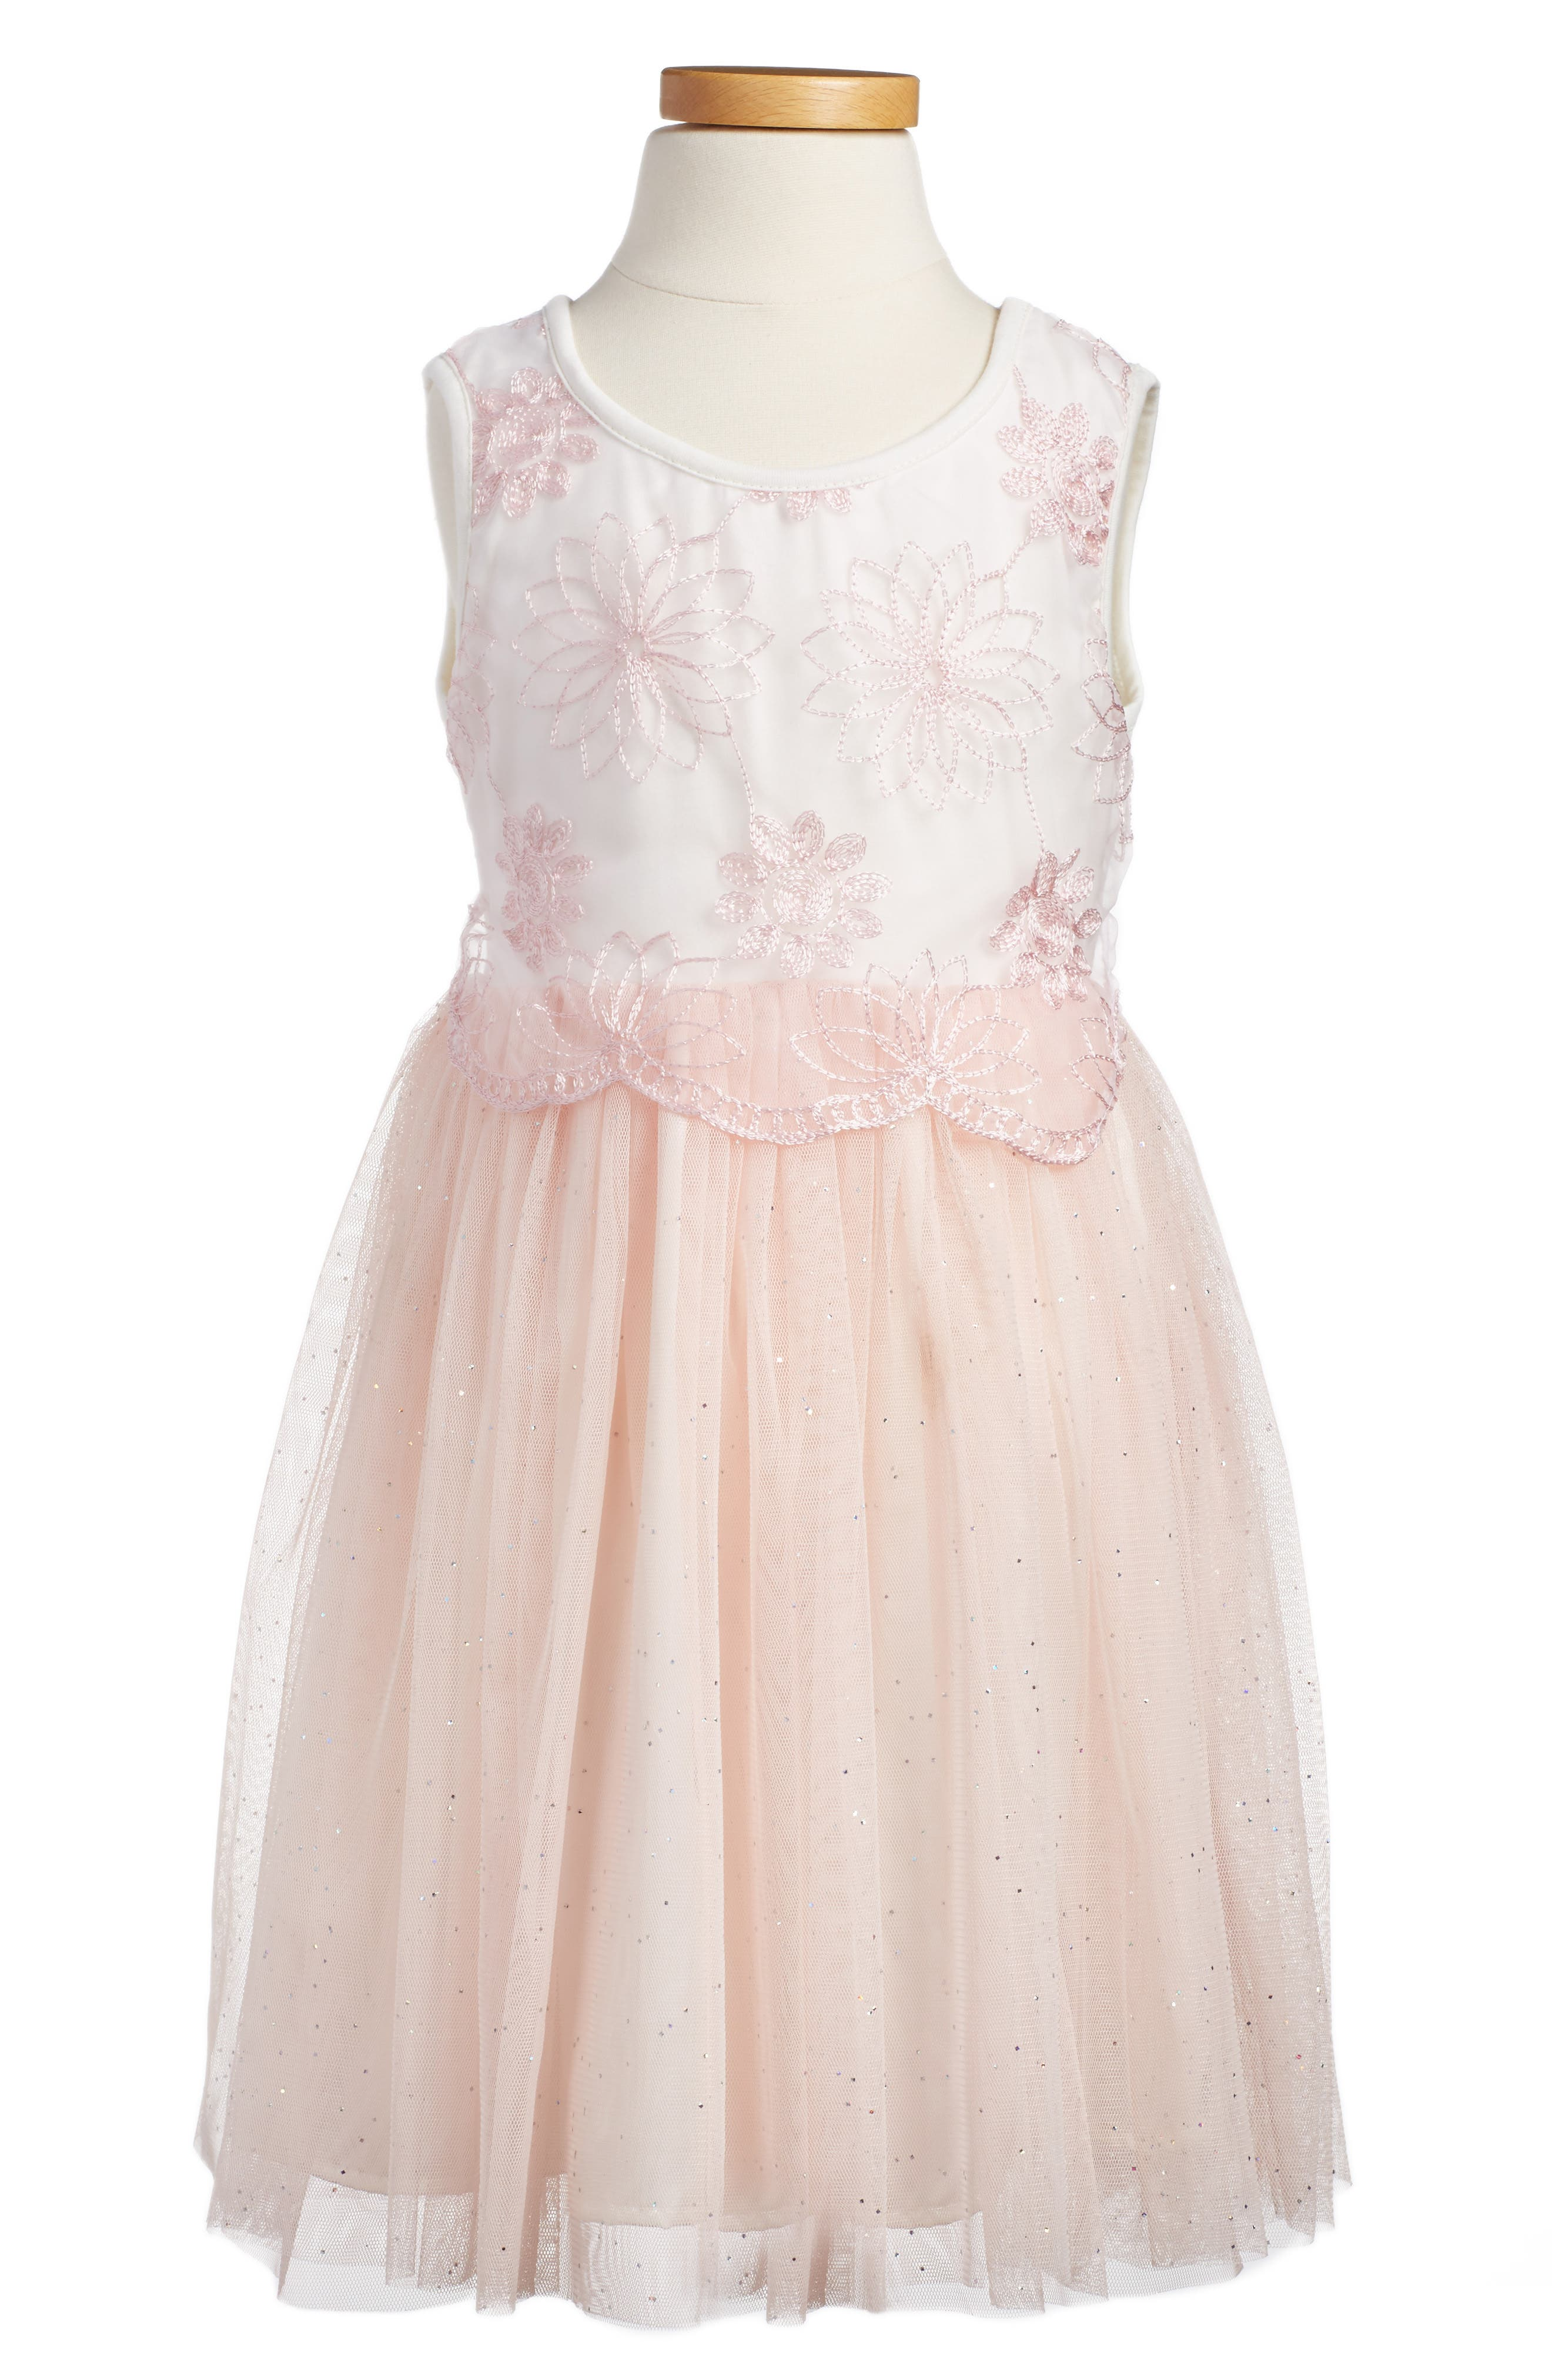 POPATU, Embroidered Tulle Dress, Alternate thumbnail 4, color, PEACH